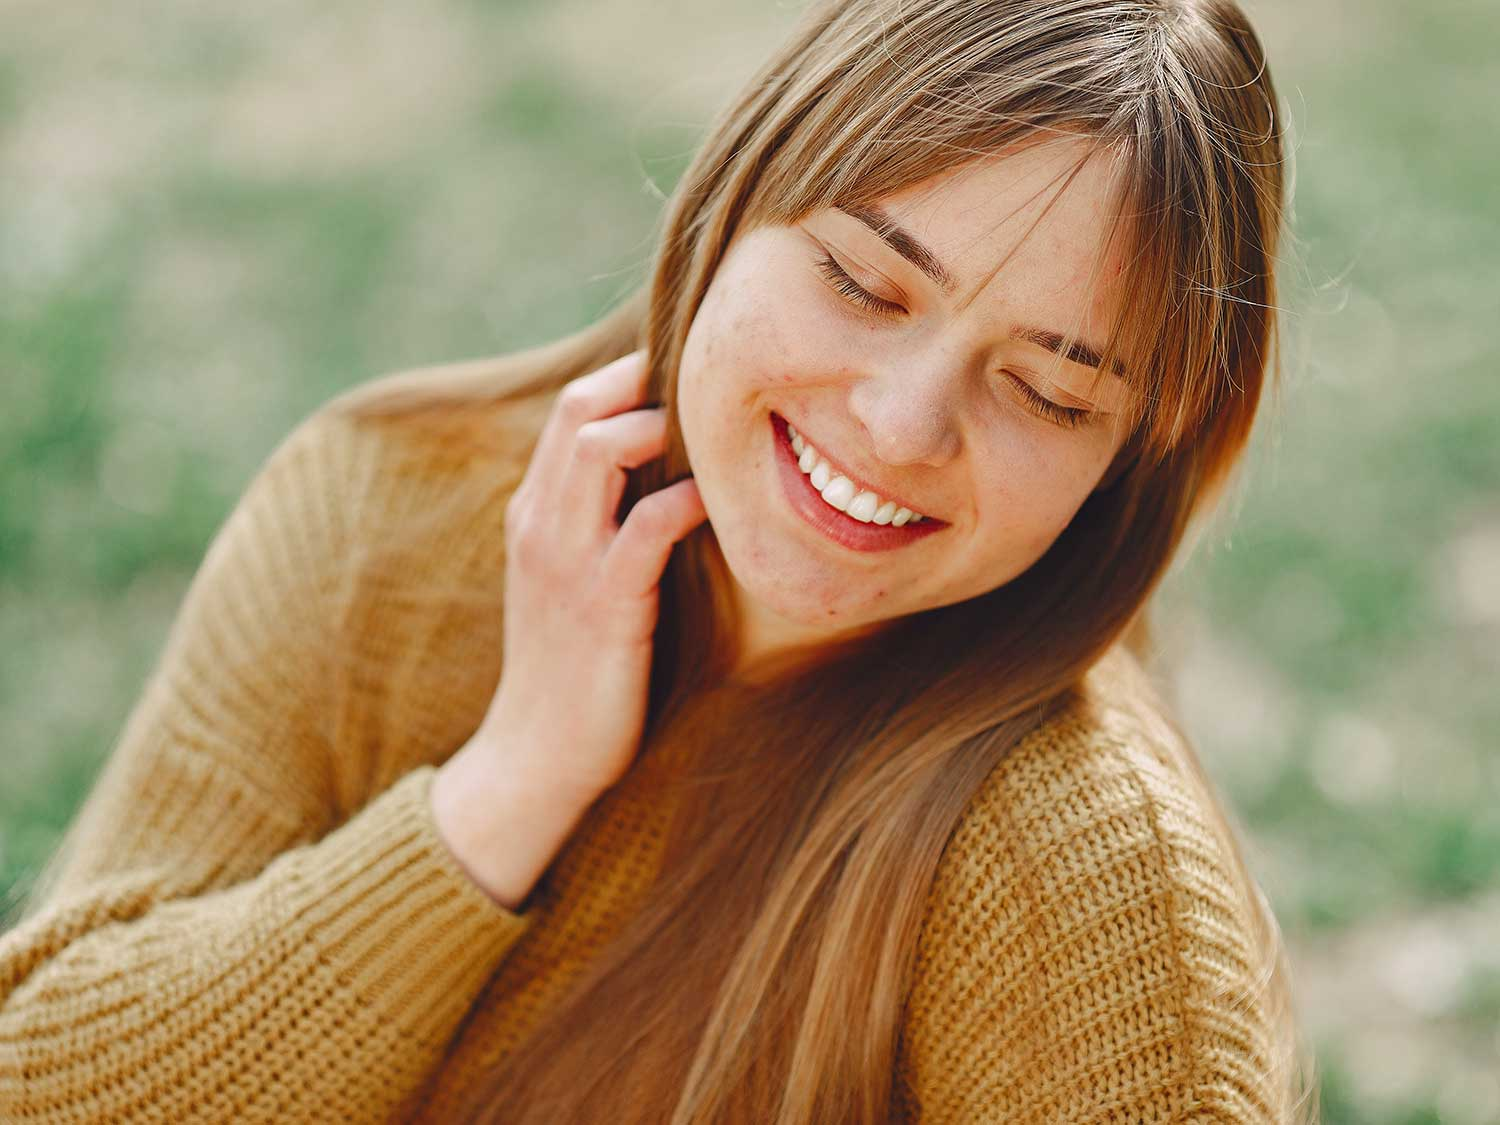 Woman with straight hair smiling.